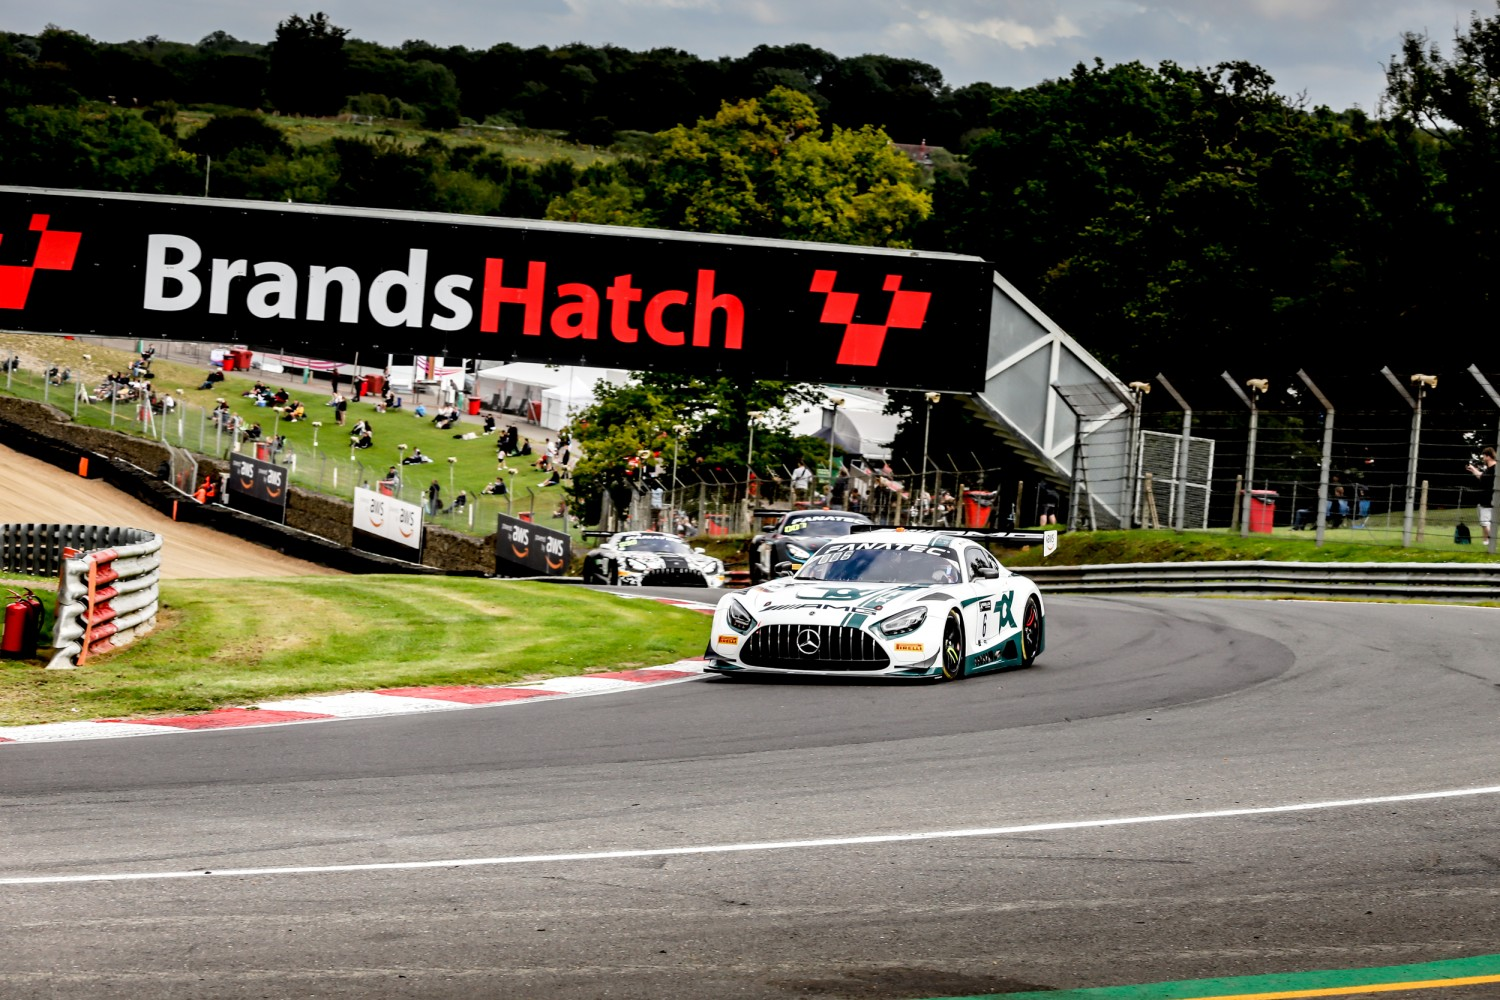 Mercedes-AMG on top across the board in Pre-Qualifying at Brands Hatch